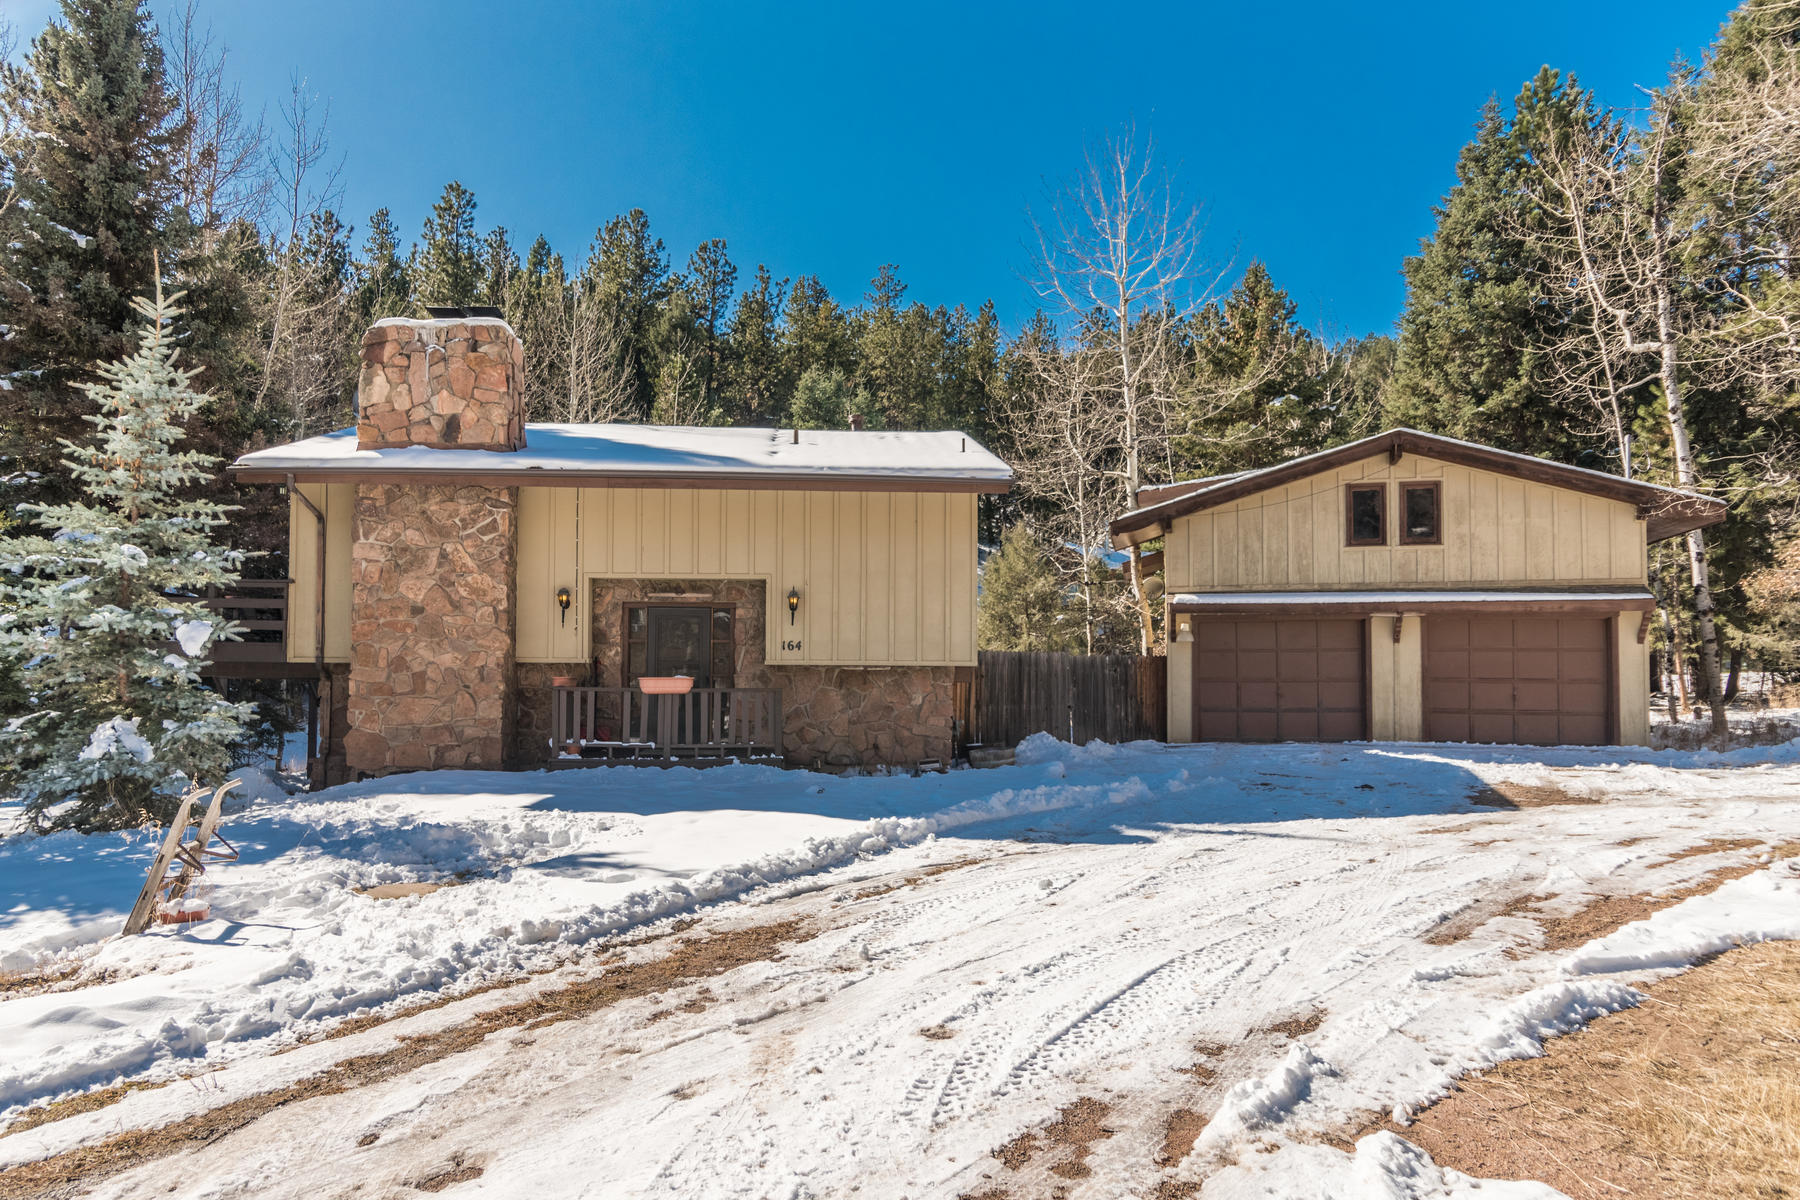 Single Family Homes for Active at Quintessential Mountain Home! 164 Brookside Drive Bailey, Colorado 80421 United States